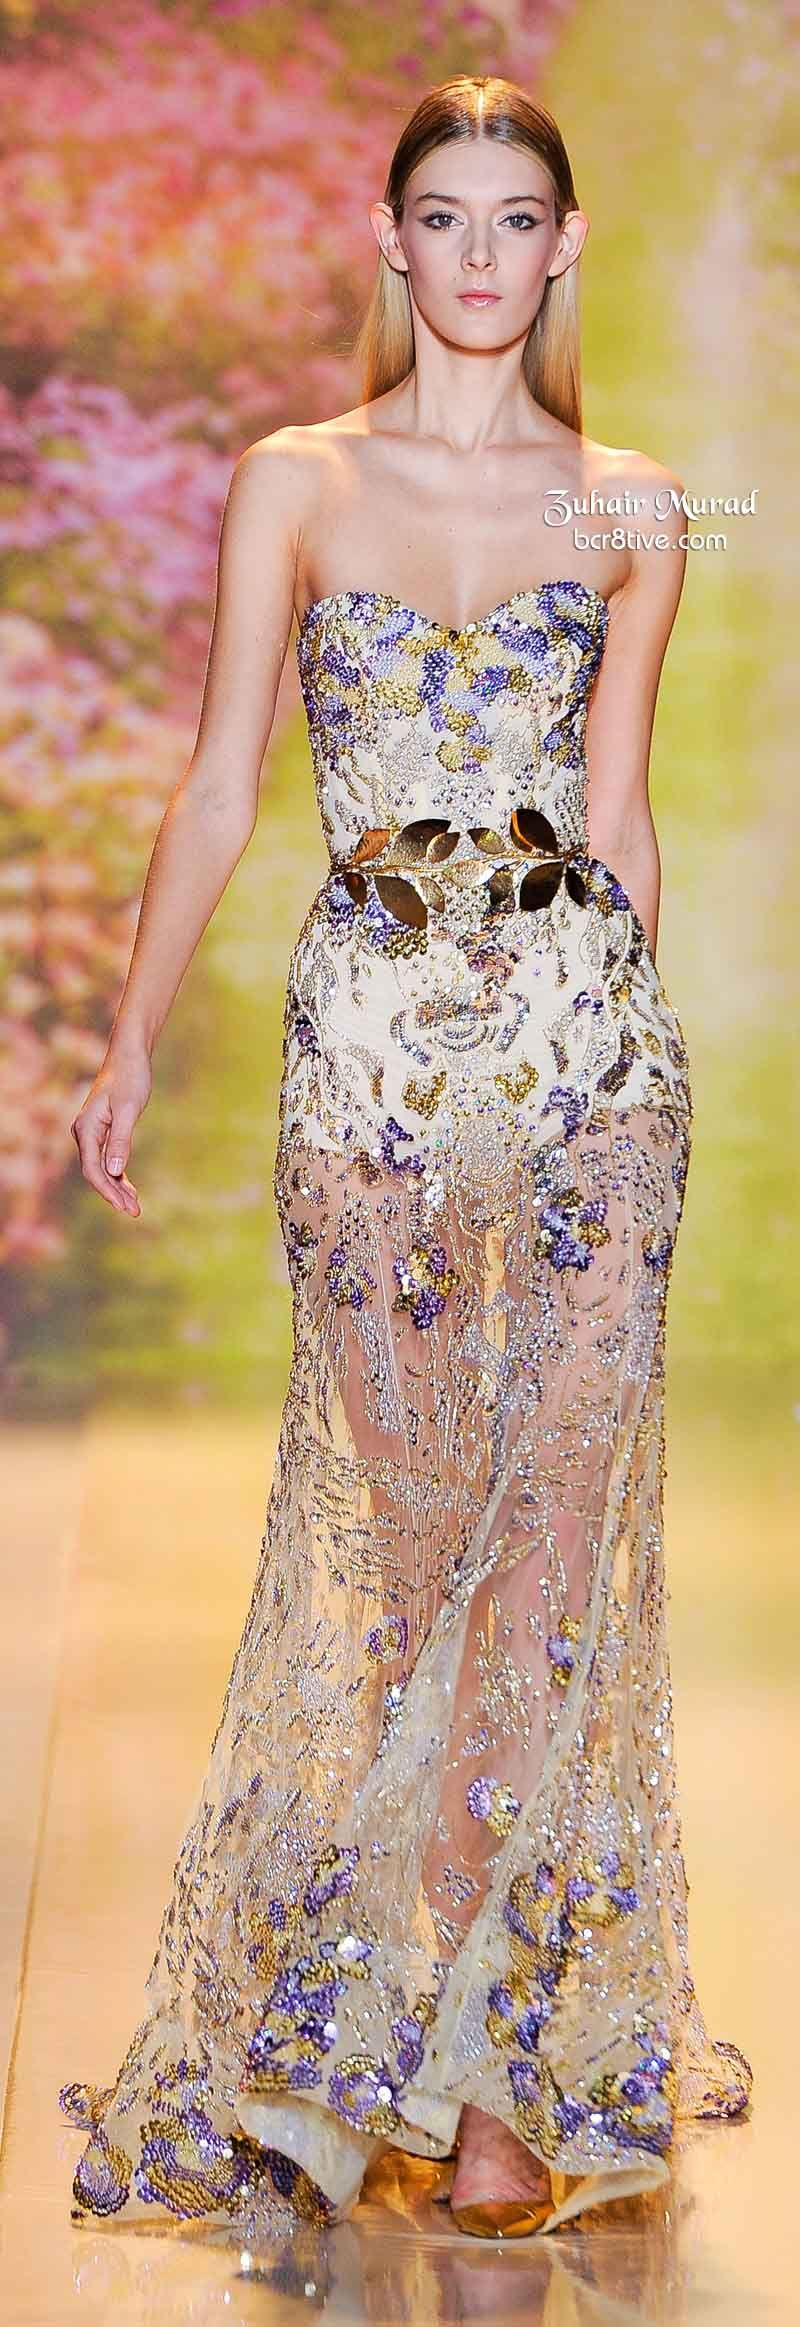 Zuhair murad spring haute couture beautiful clothes